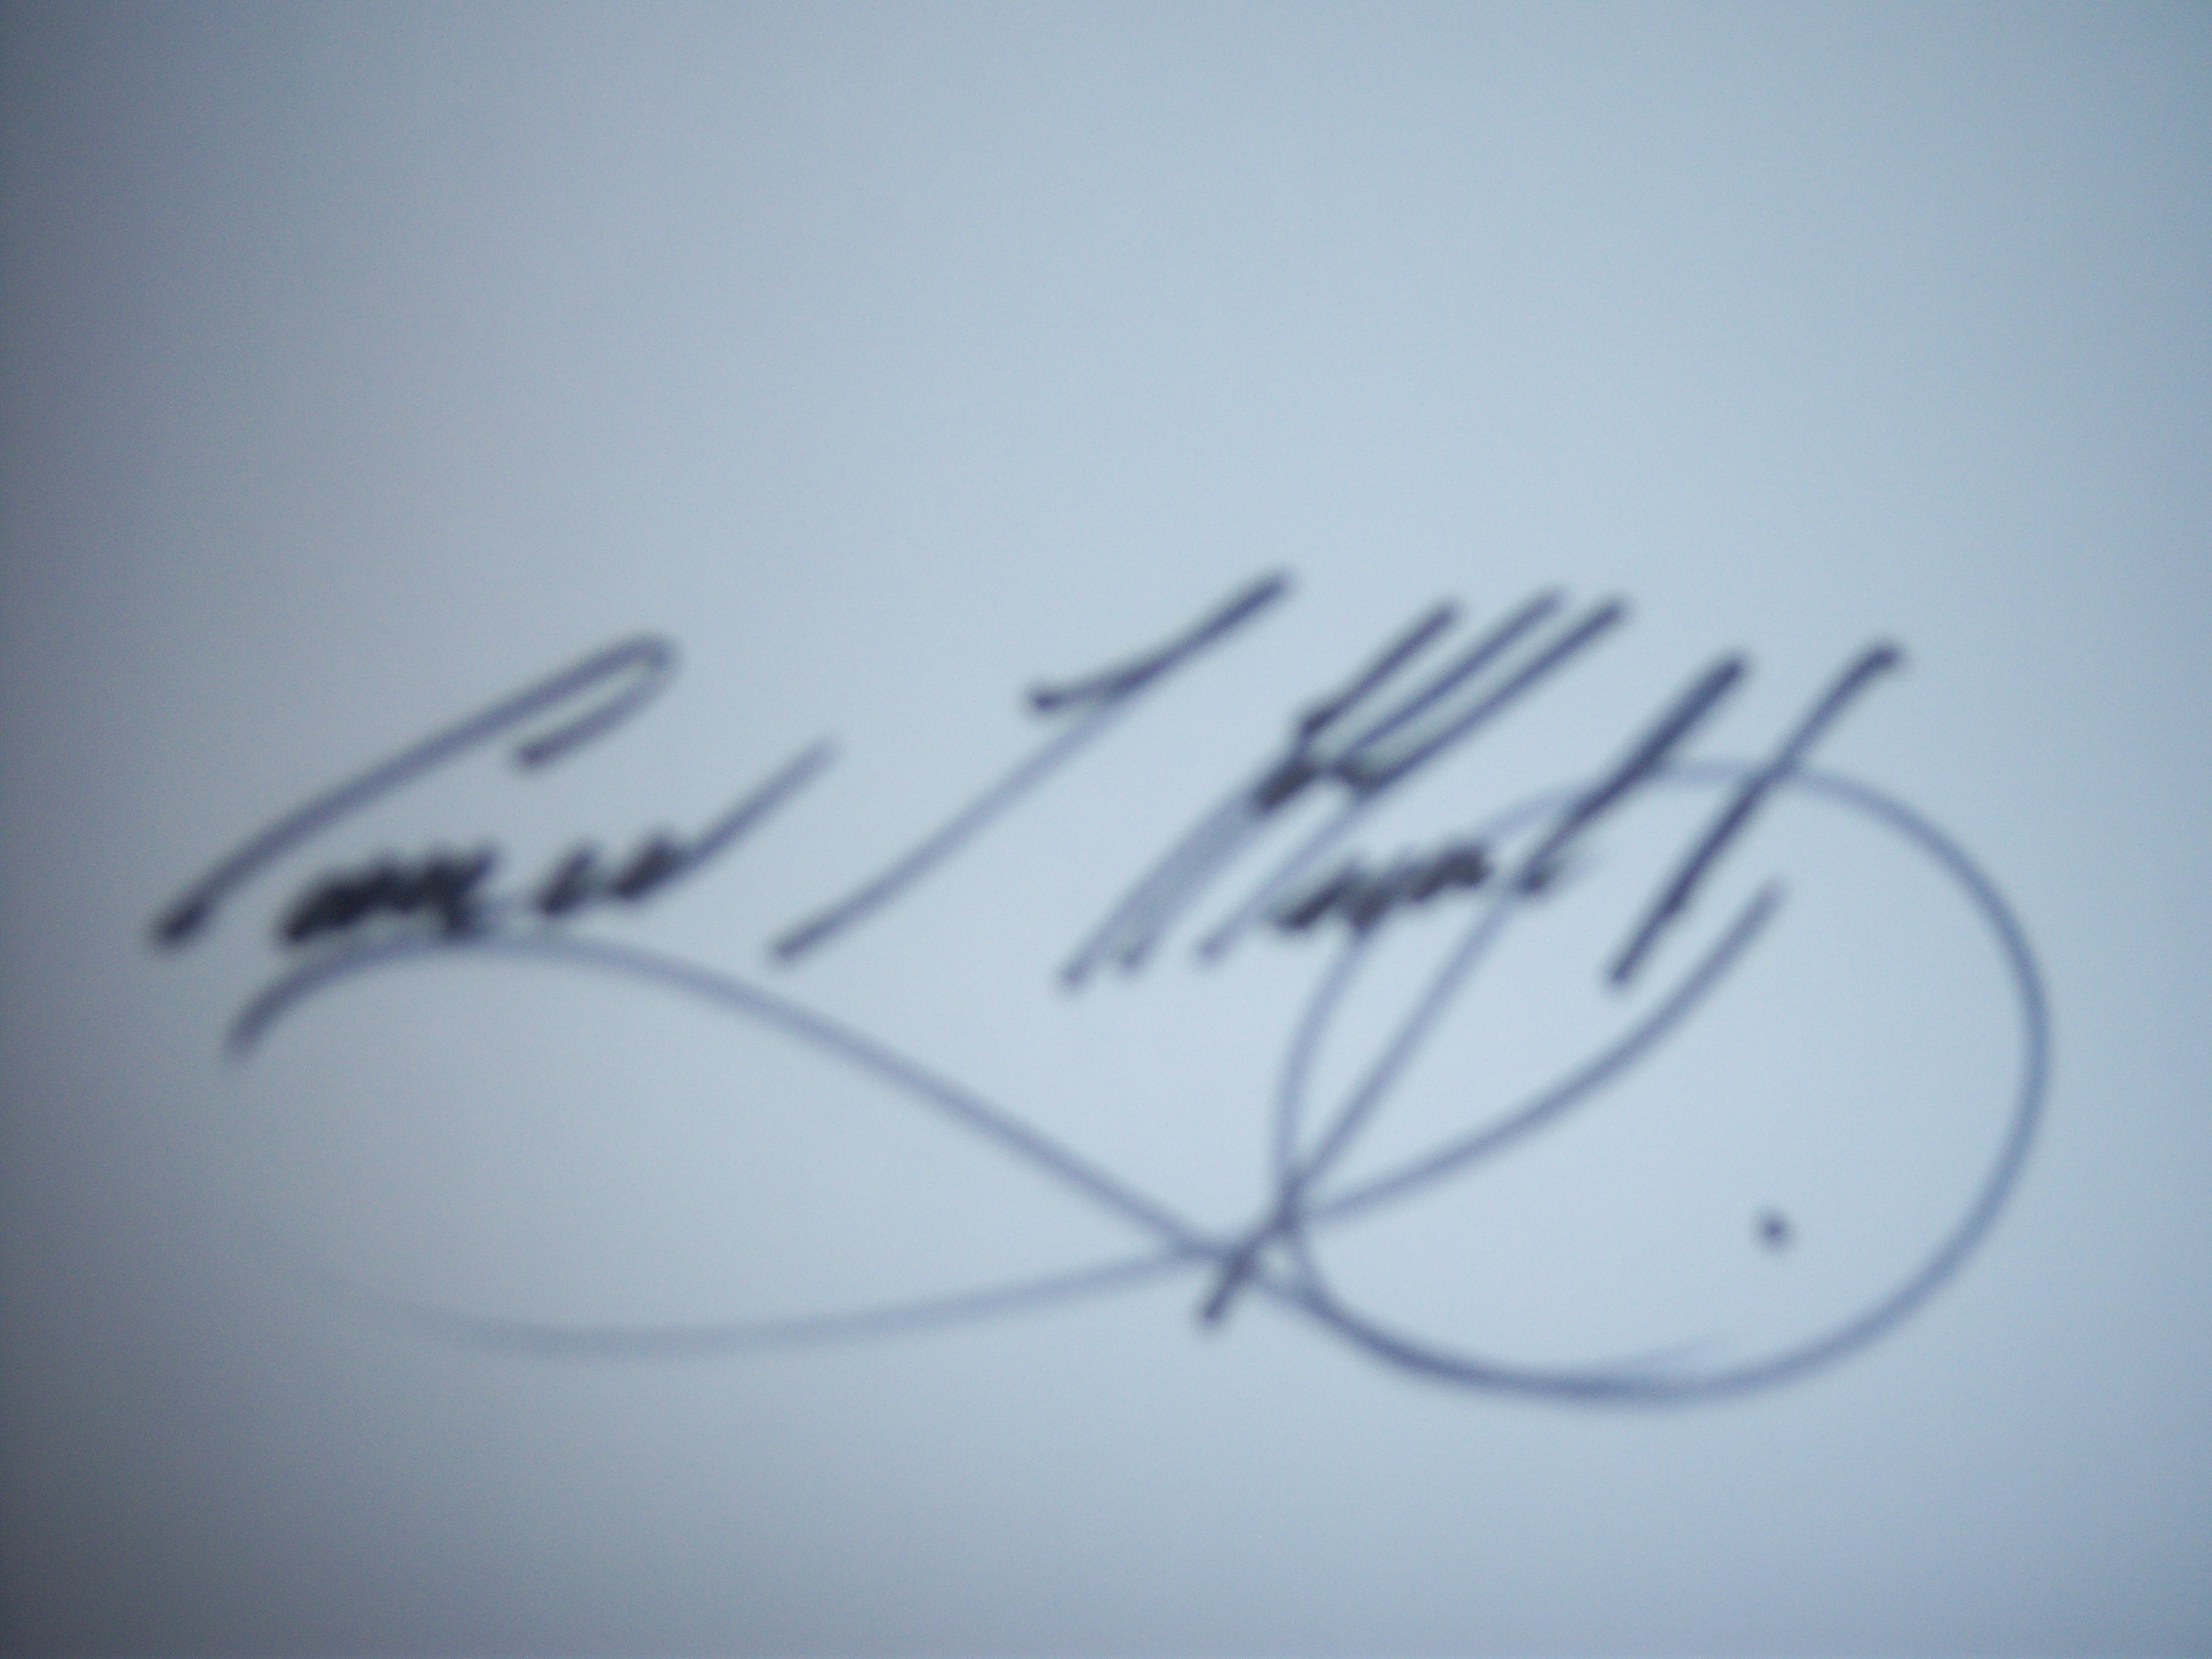 Conor Murphy's Signature